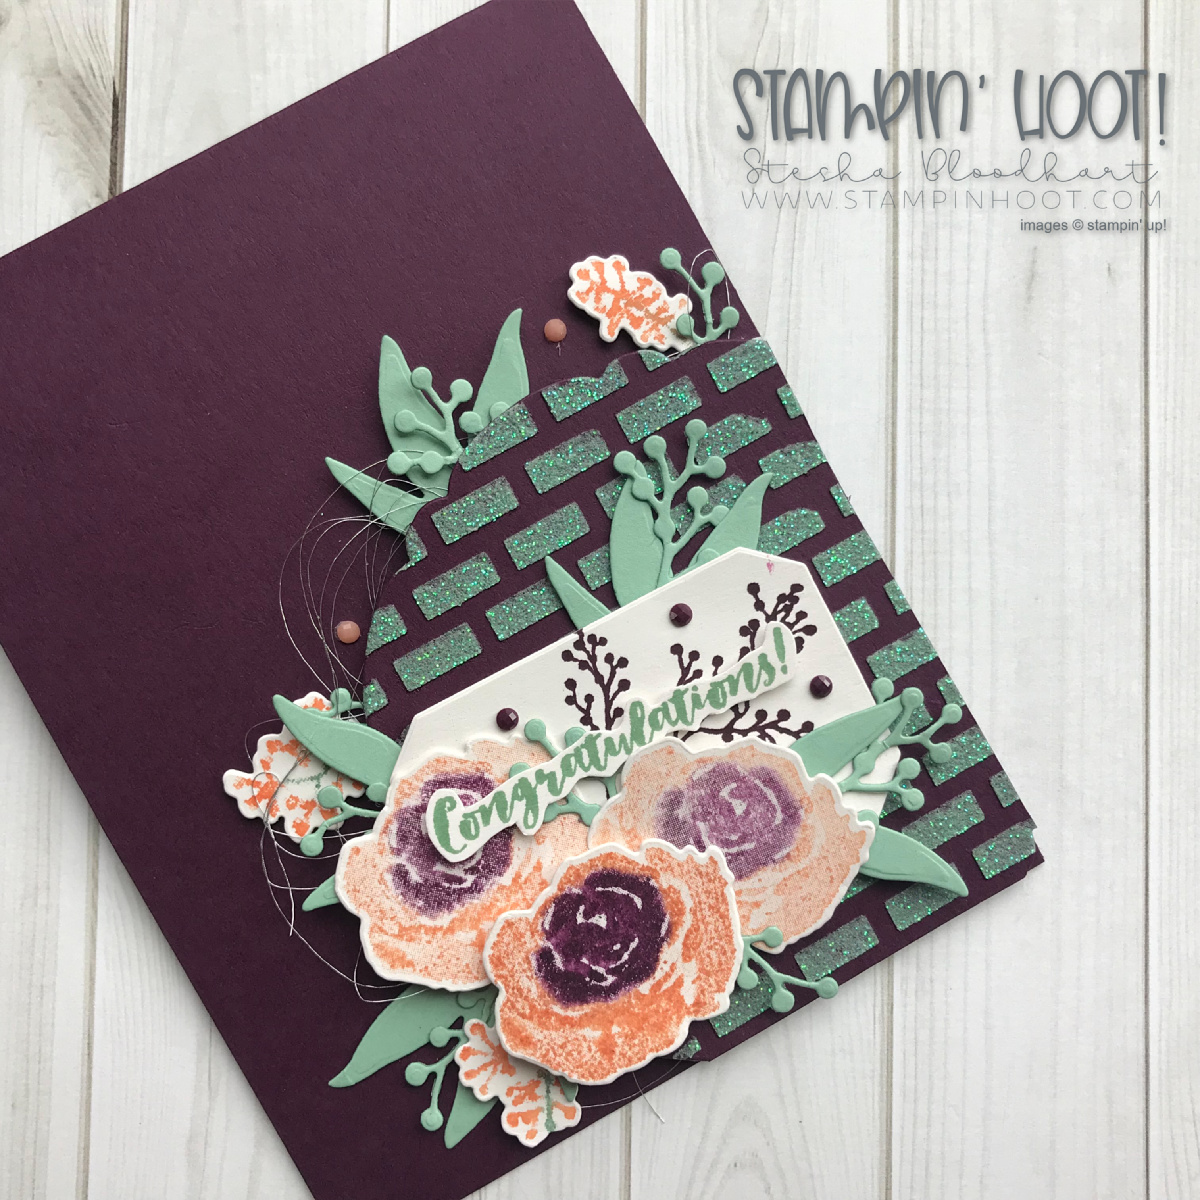 First Frost Bundle by Stampin' Up! Handmade Congratulations Card by Stesha Bloodhart, Stampin' Hoot! for #gdp157 Color Challenge. #steshabloodhart #stampinhoot